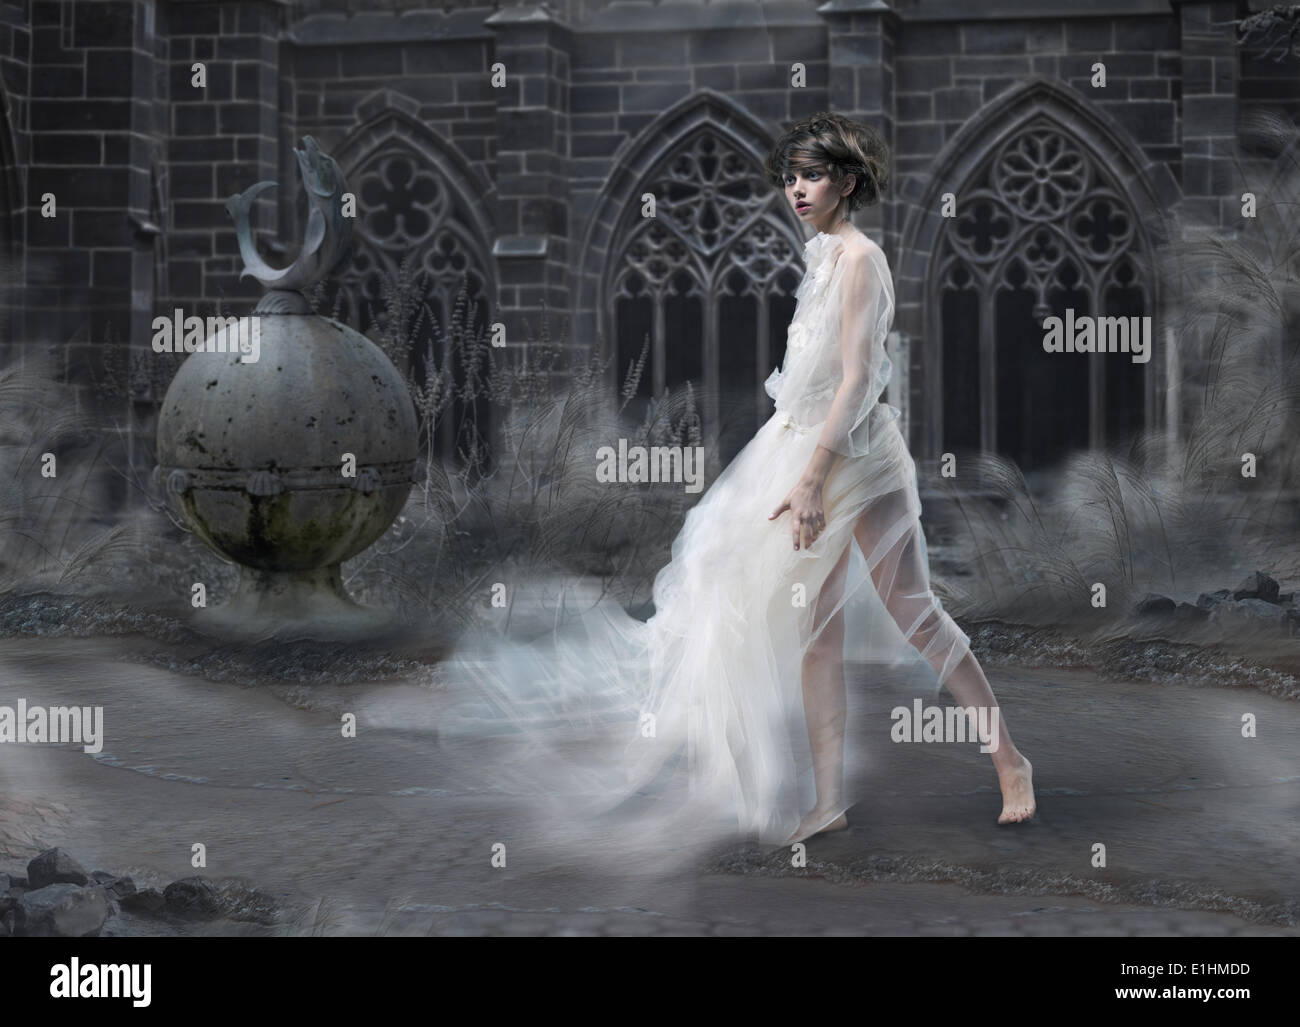 Mystery. Magic Woman Silhouette in Old Smoky Castle. Mystic Ancient Scenic - Stock Image